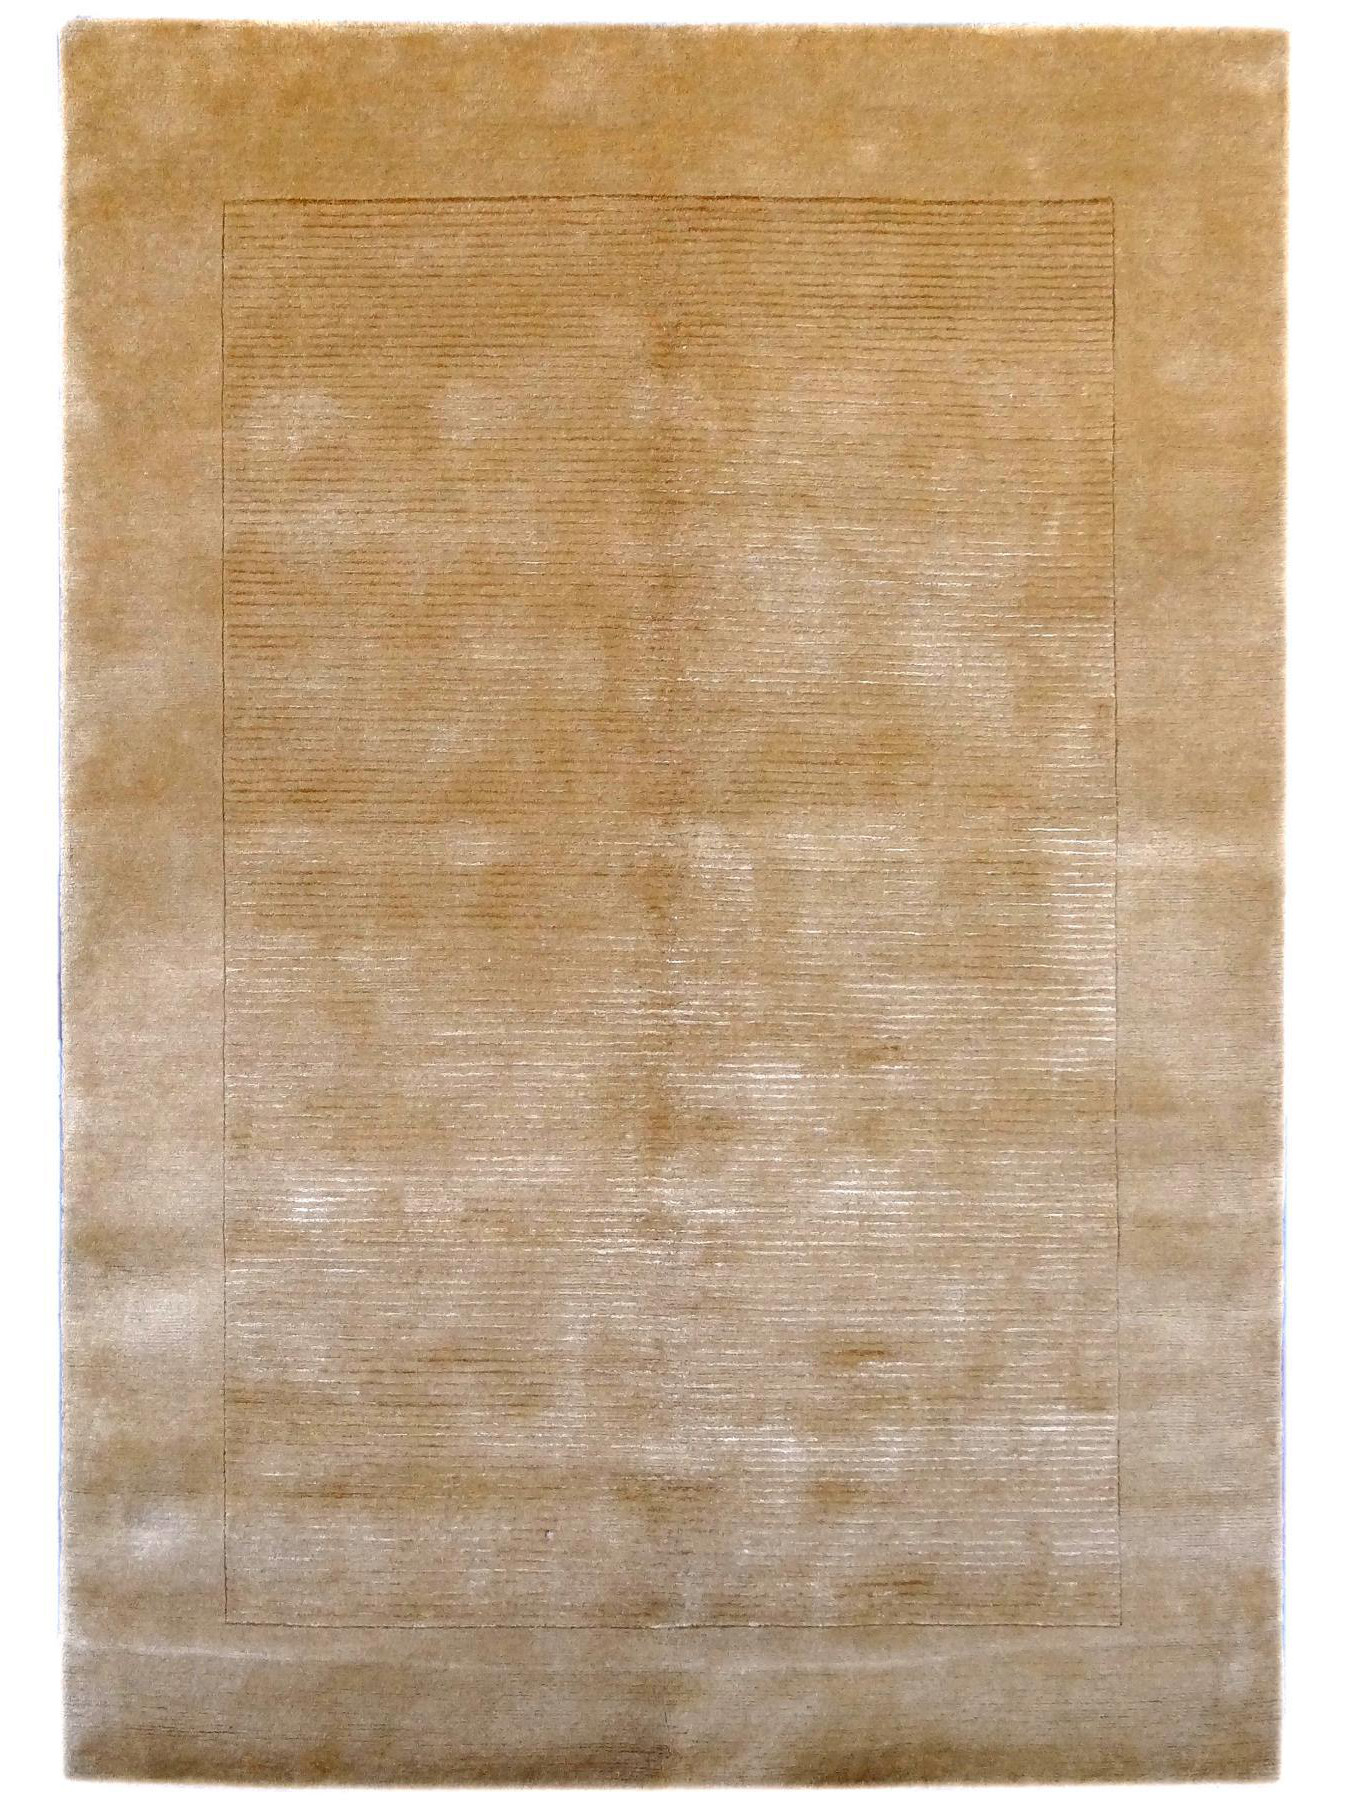 Carpets with borders - BAGUETTES - S3303